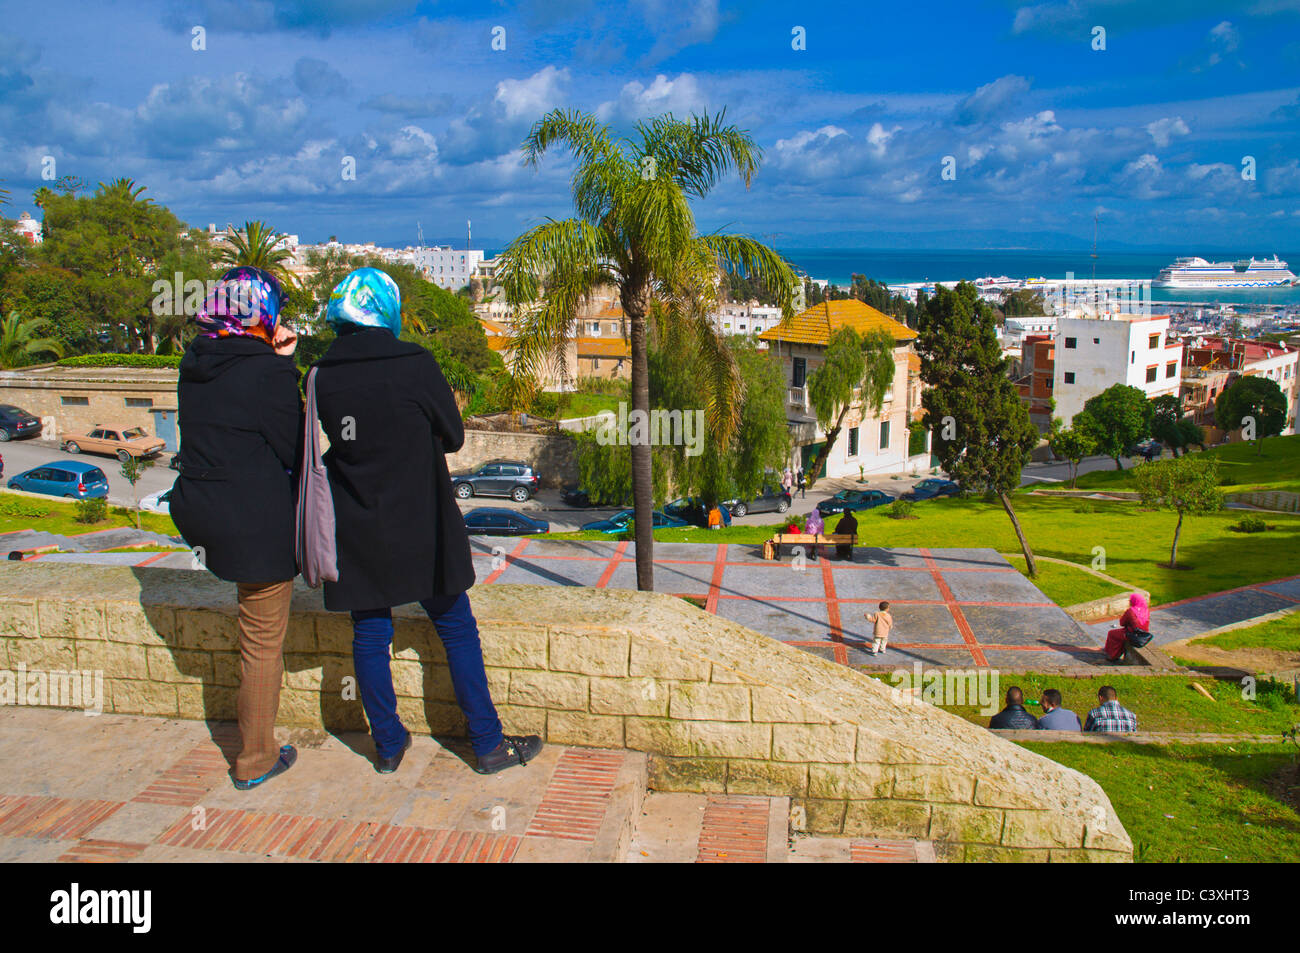 View from Terrasse des Paresseux platform onto Strait of Girbraltar new town Tangier Morocco Africa - Stock Image